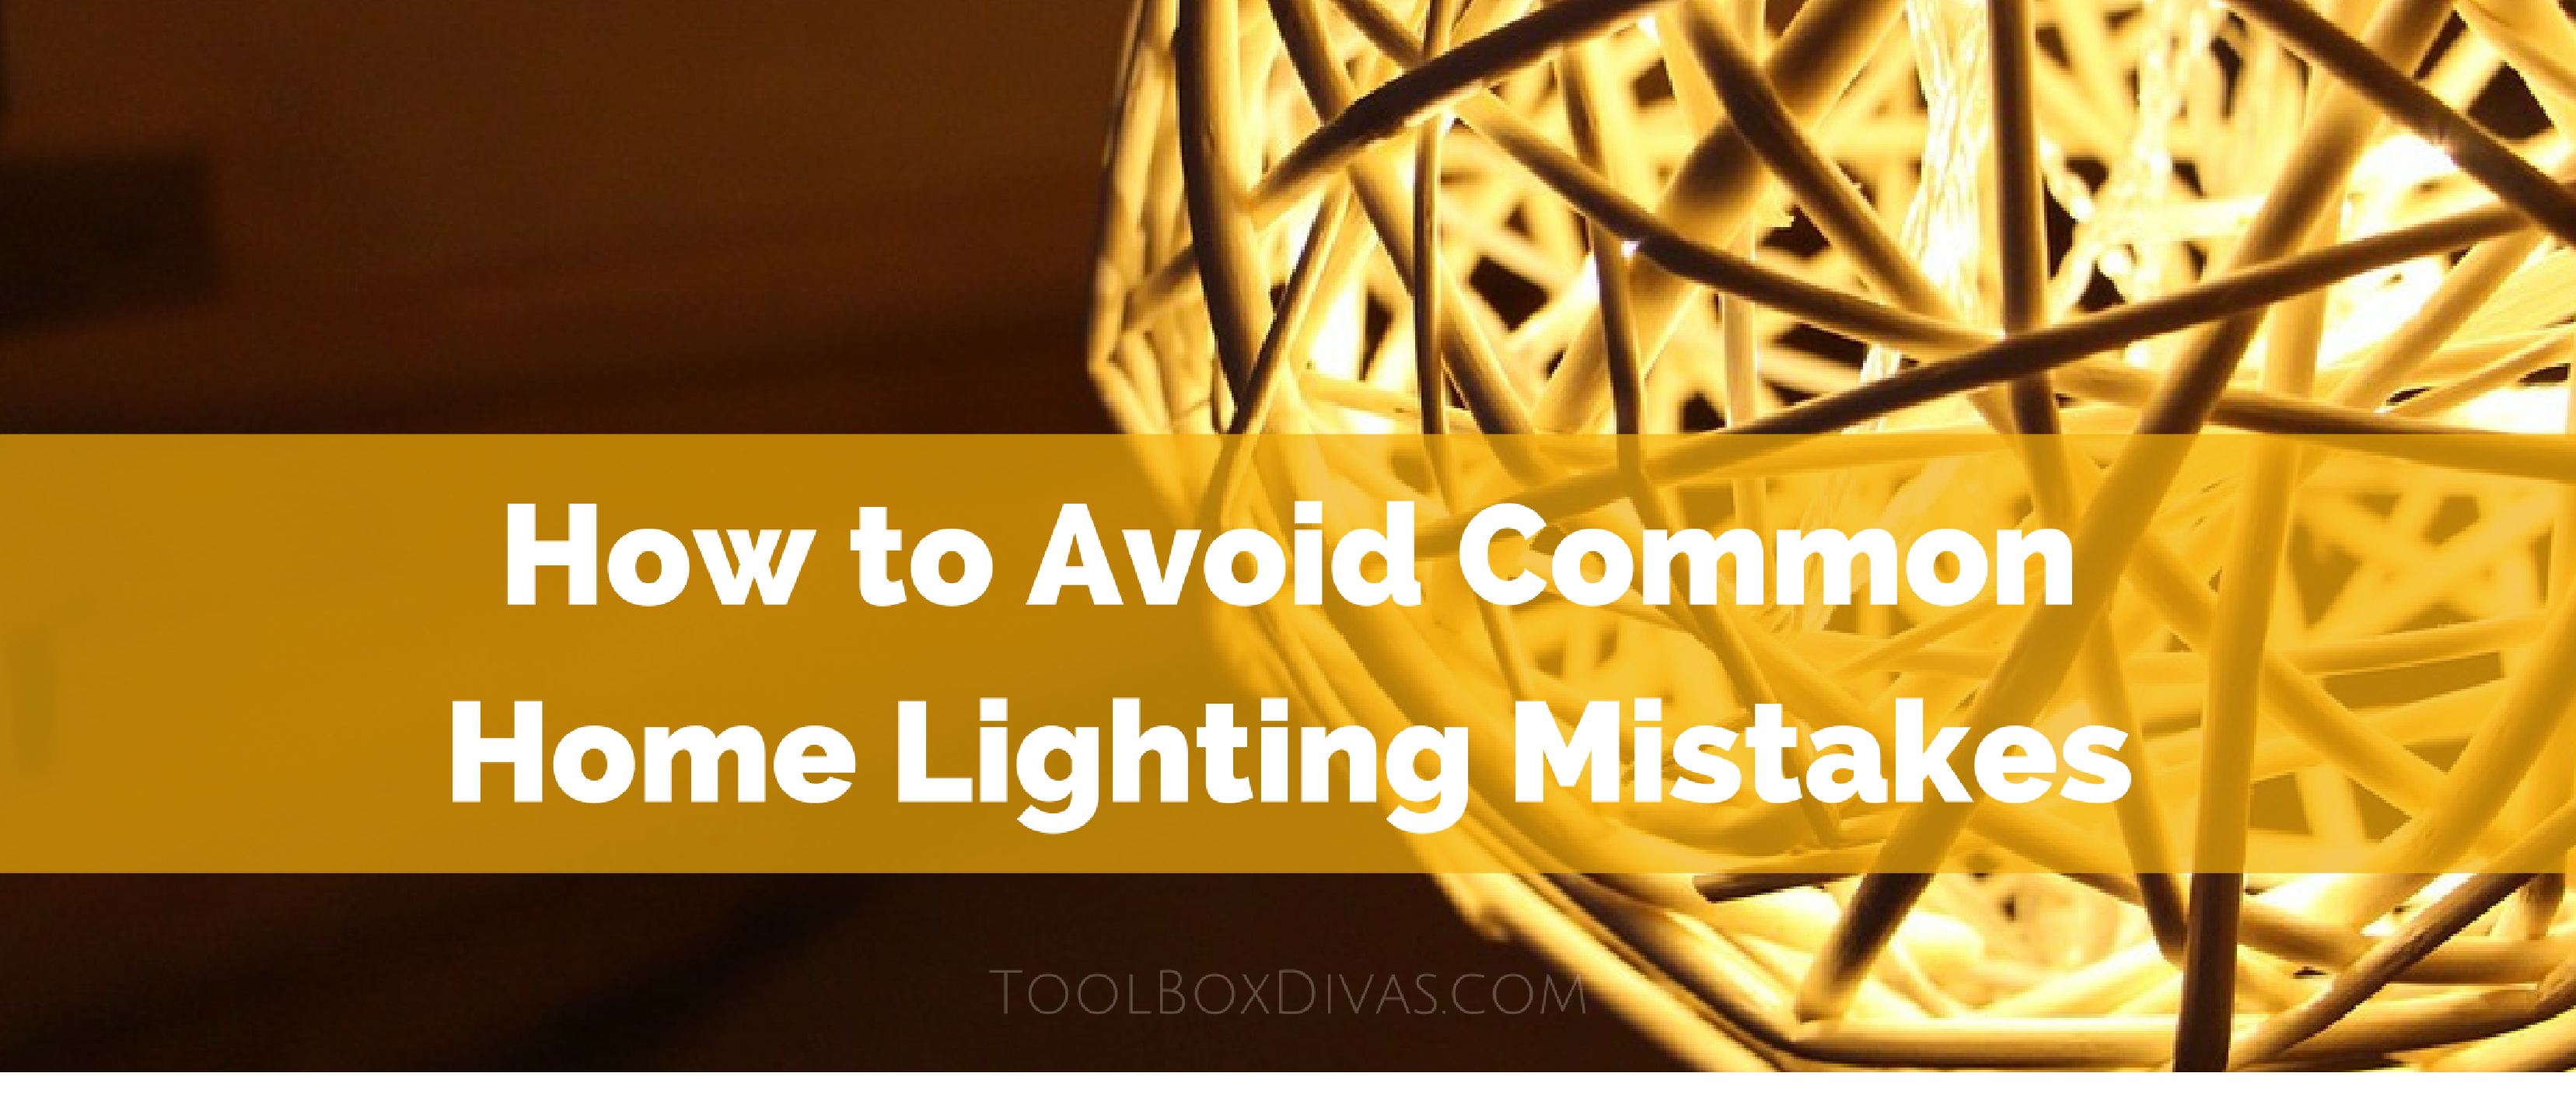 How to Avoid Common Home Lighting Mistakes